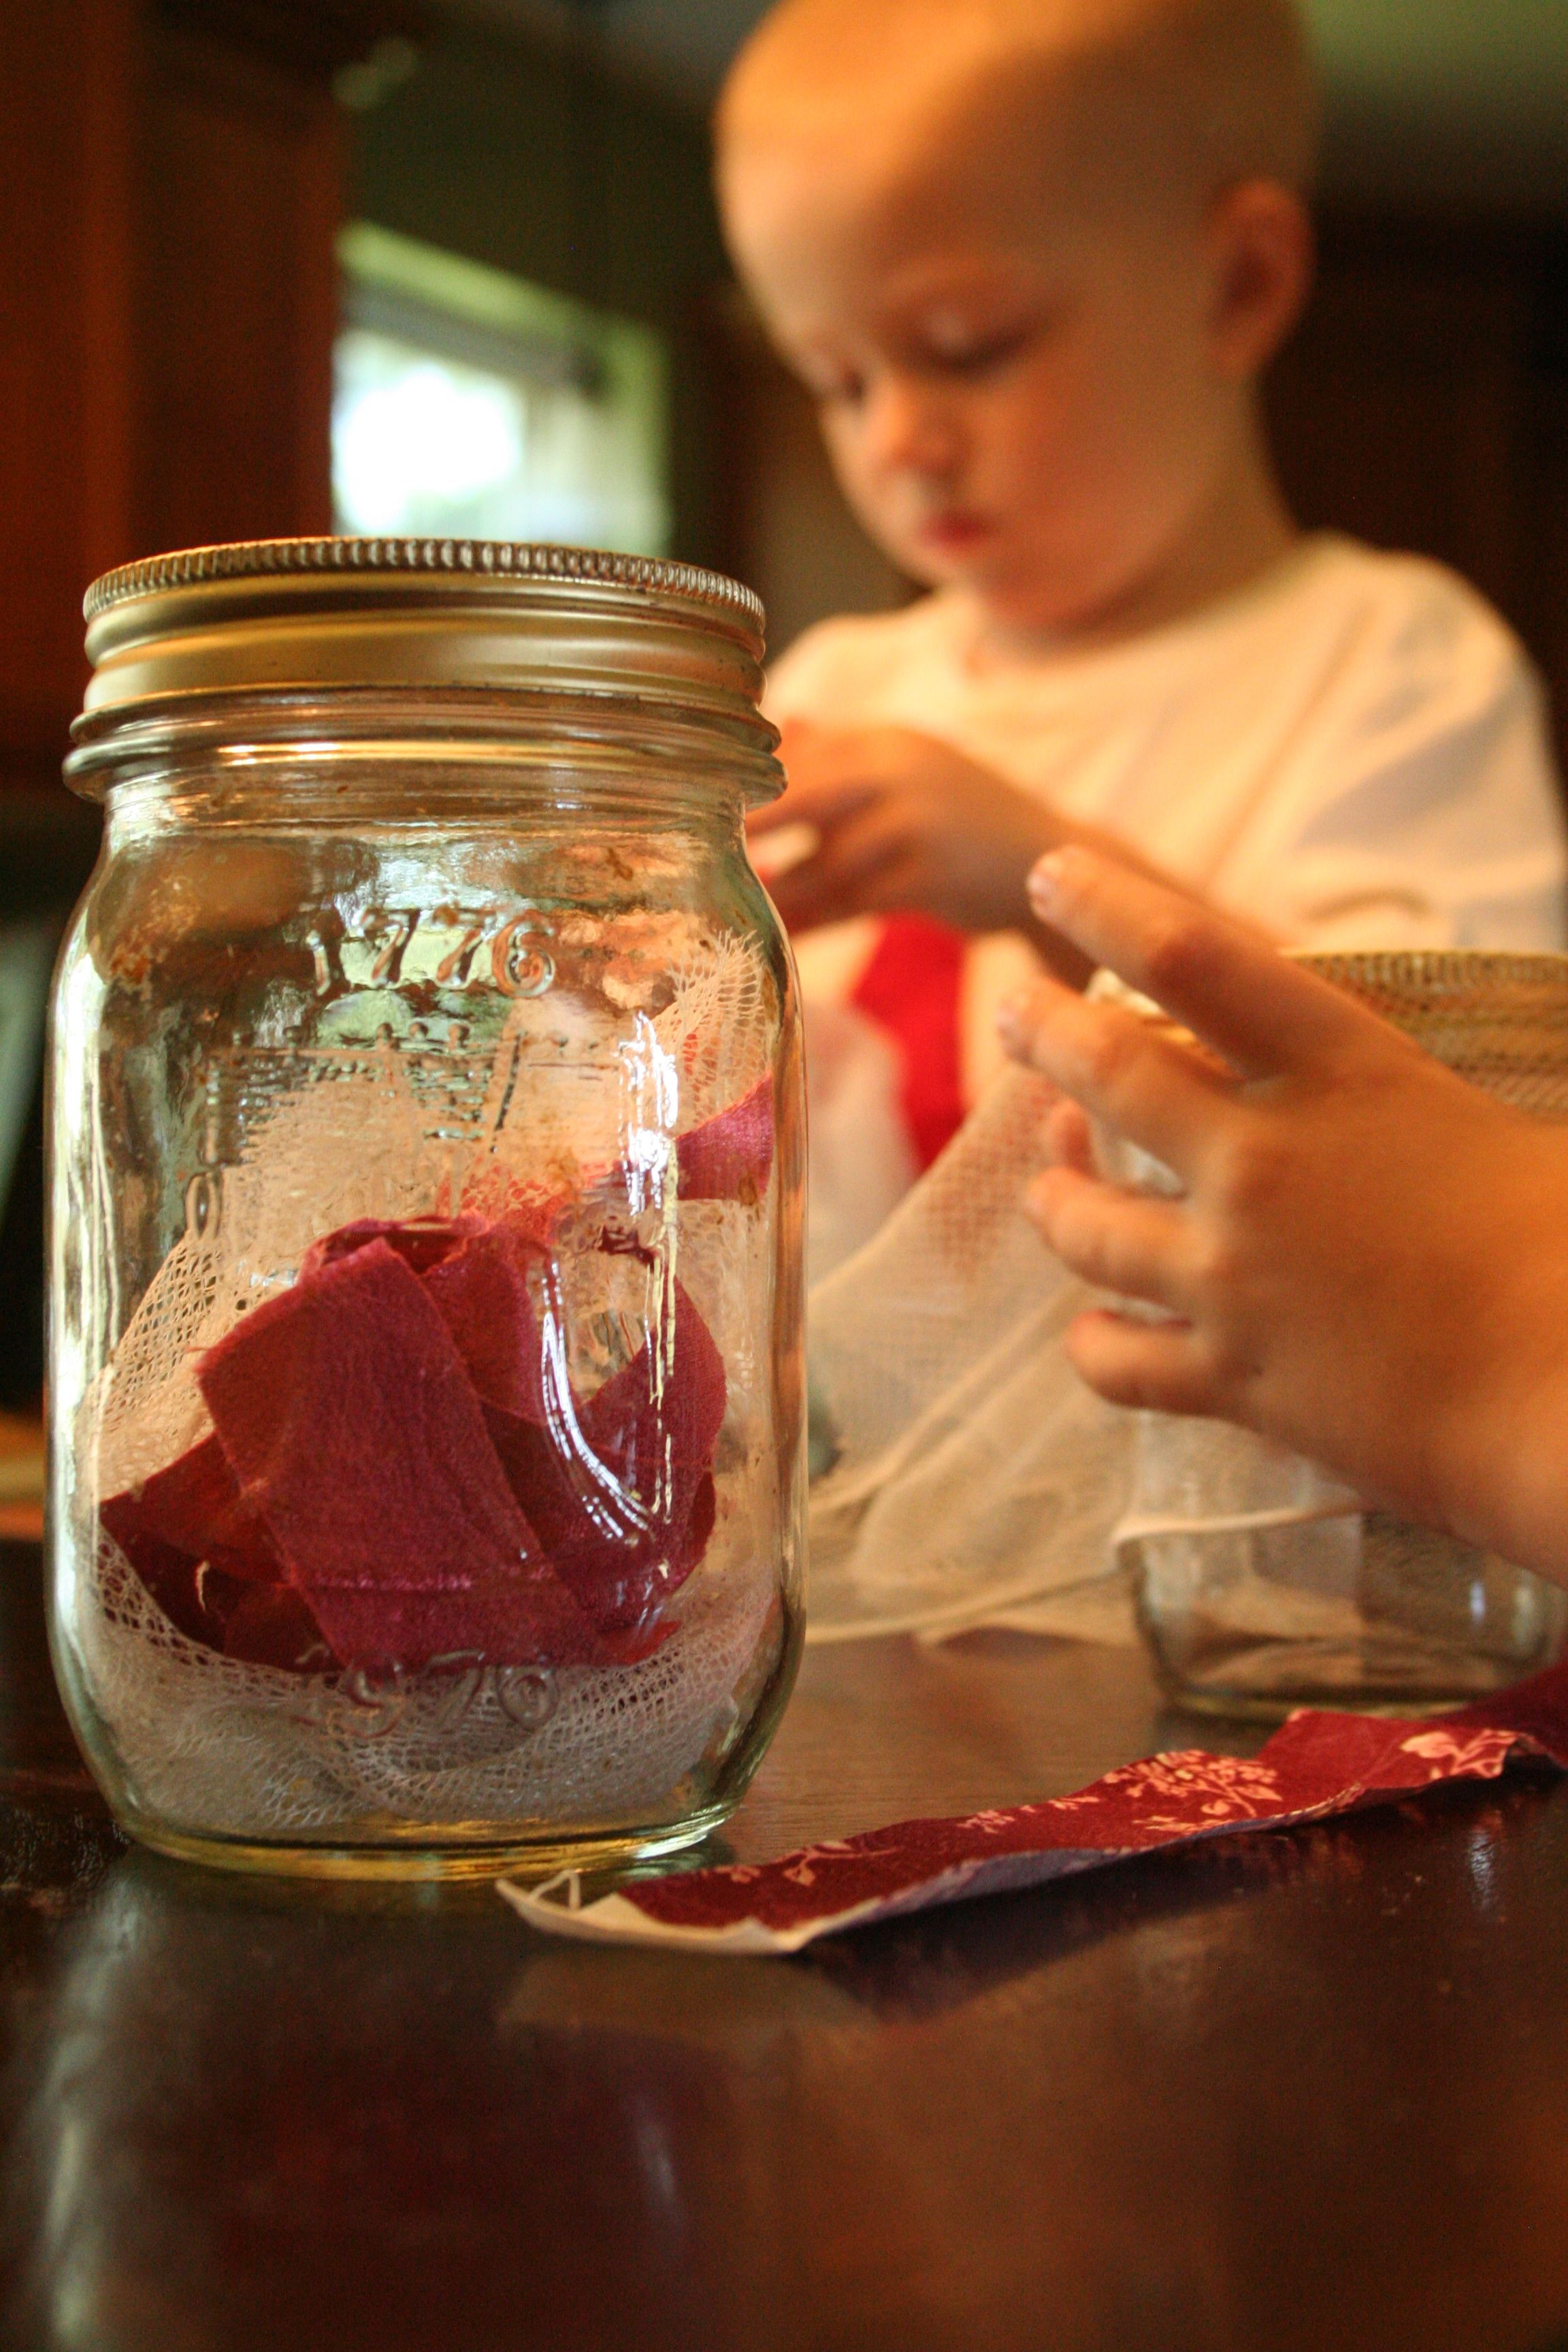 cousin camp firefly jar